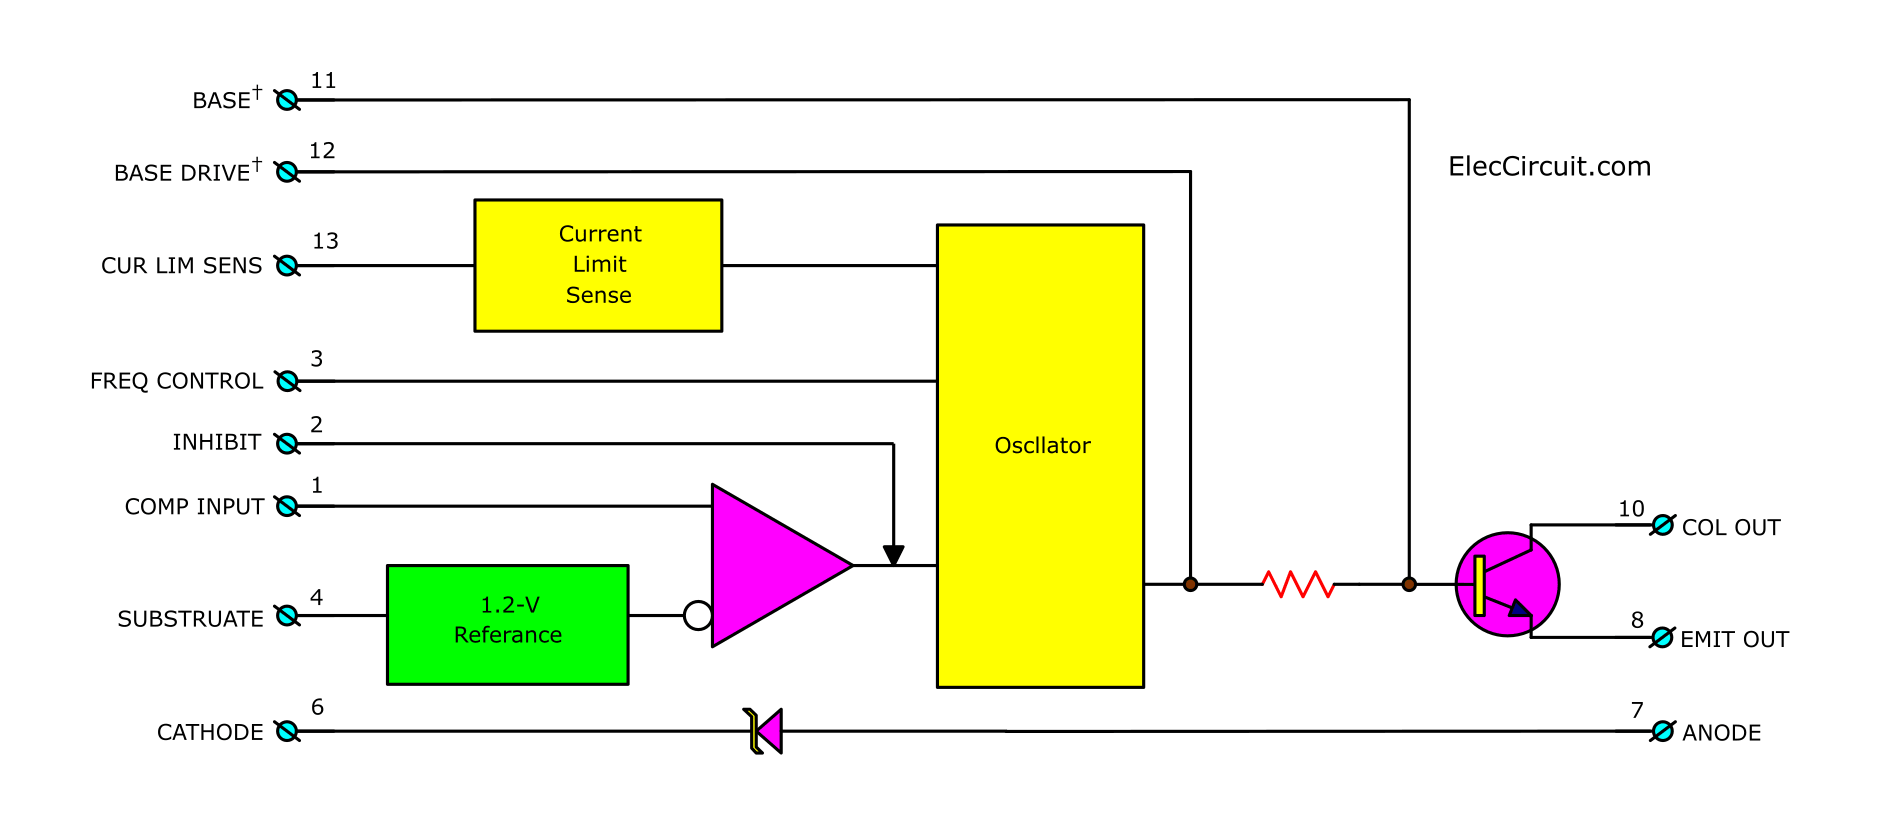 switched mode power supply schematic using tl497internal structures of tl497